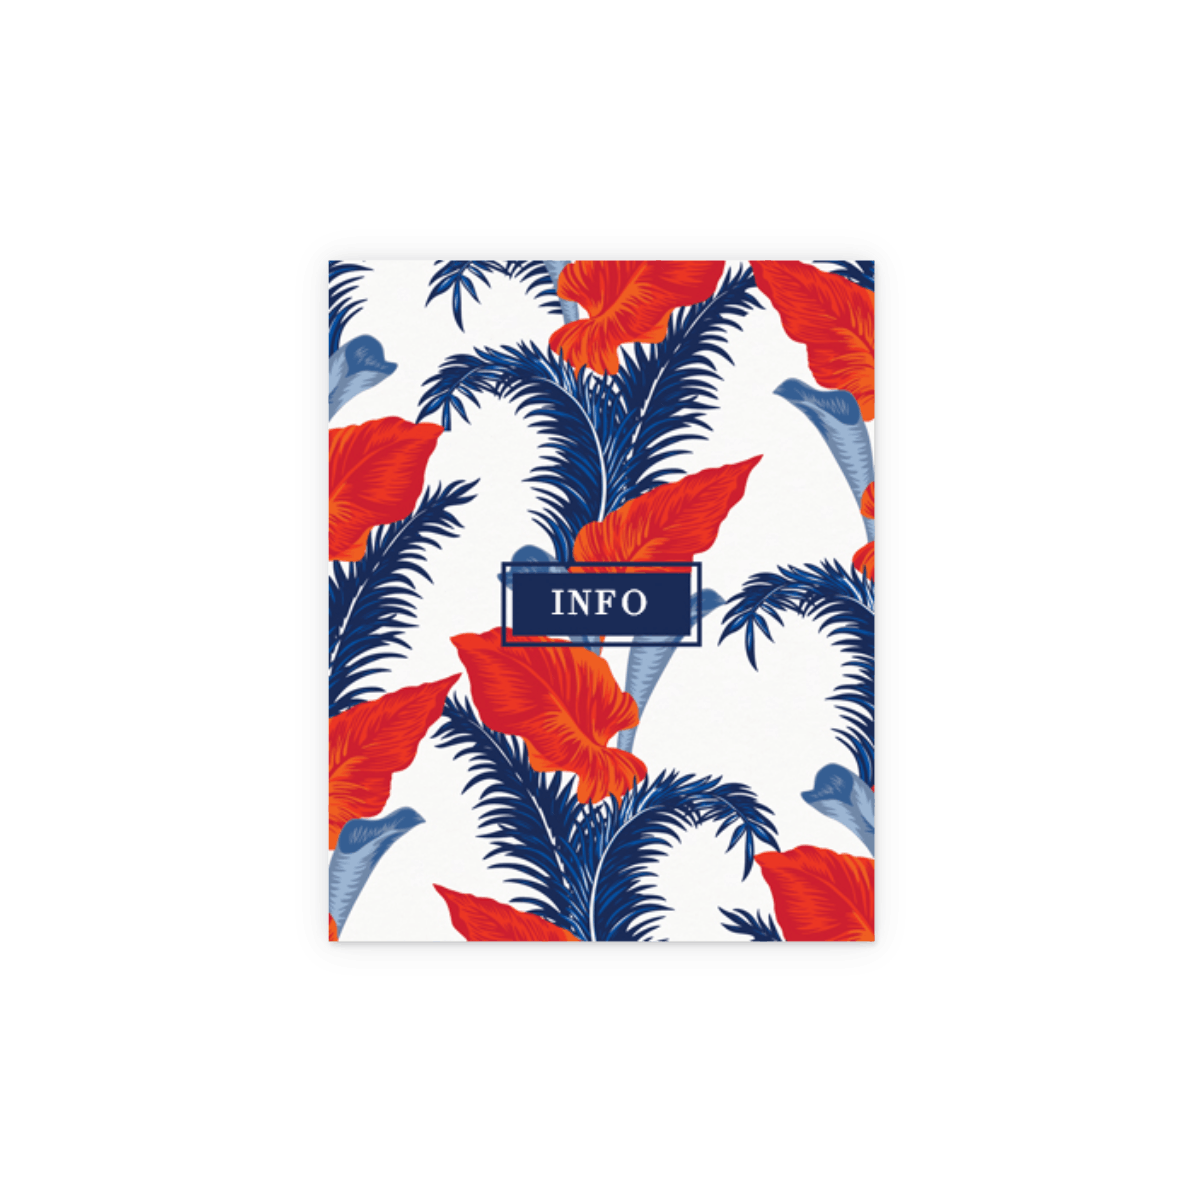 Https%3a%2f%2fwww.papier.com%2fproduct image%2f39603%2f9%2fred blue palms 9767 insert back 1528798553.png?ixlib=rb 1.1